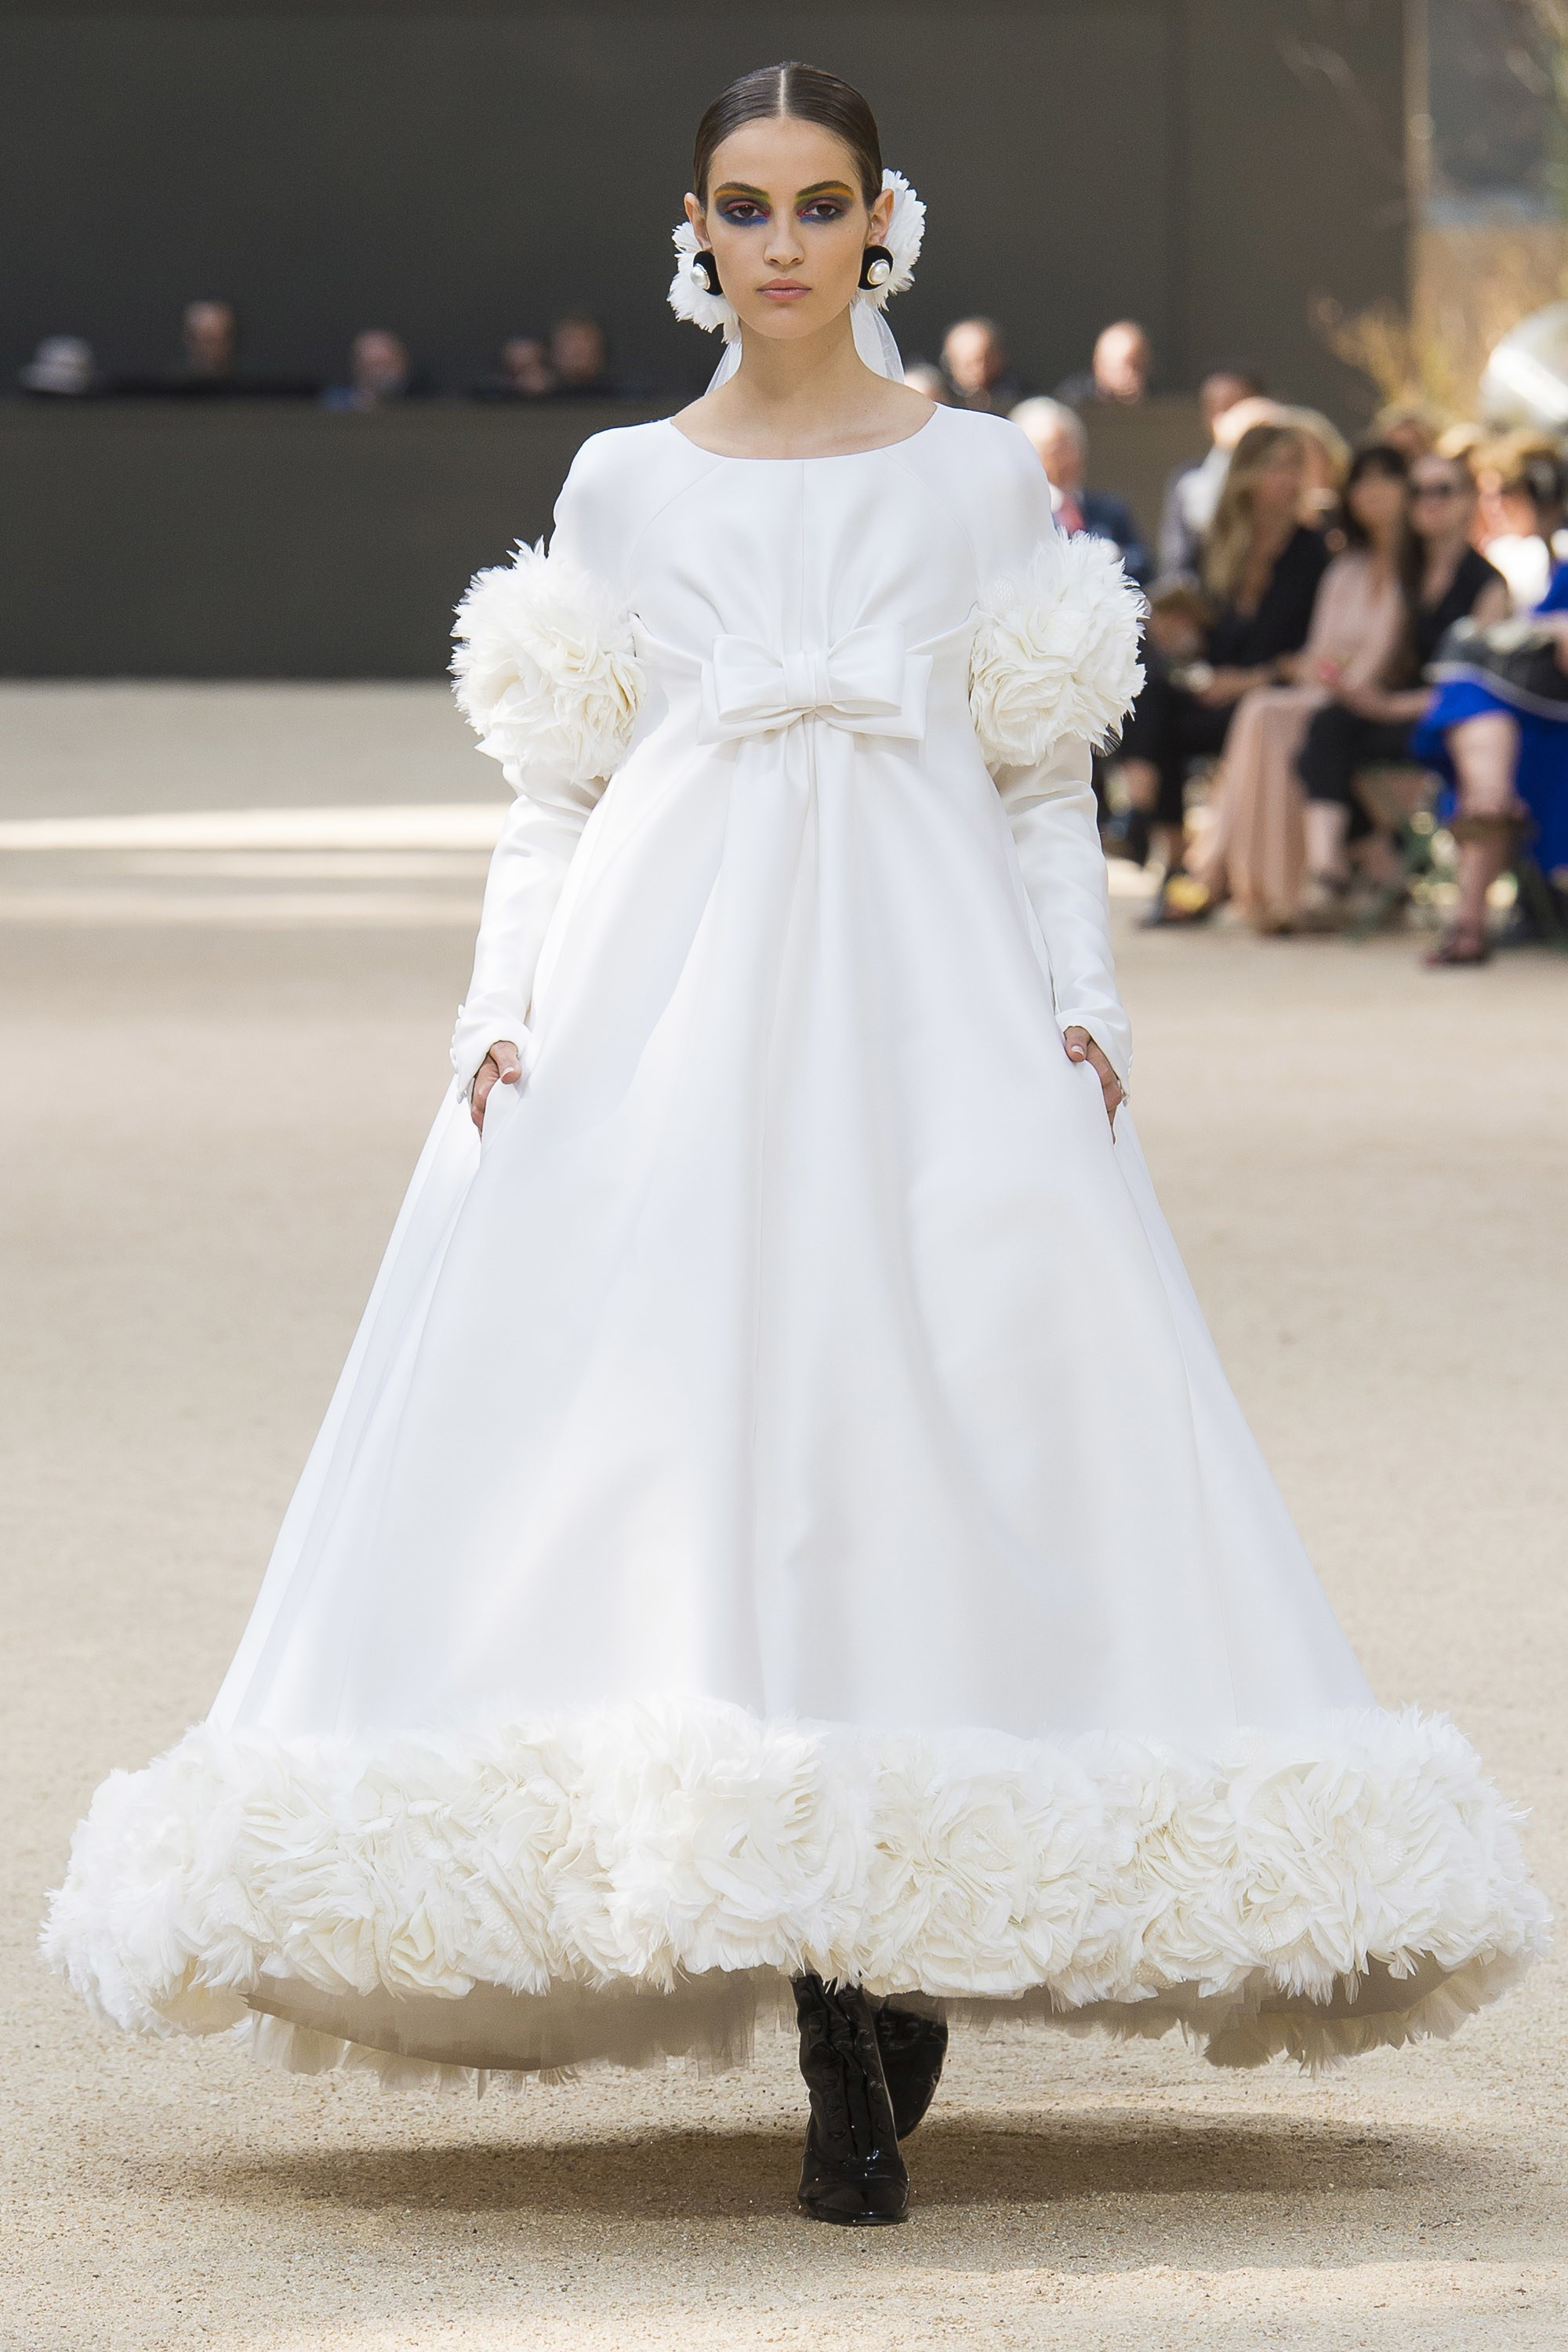 CHANEL: Bell Shapes